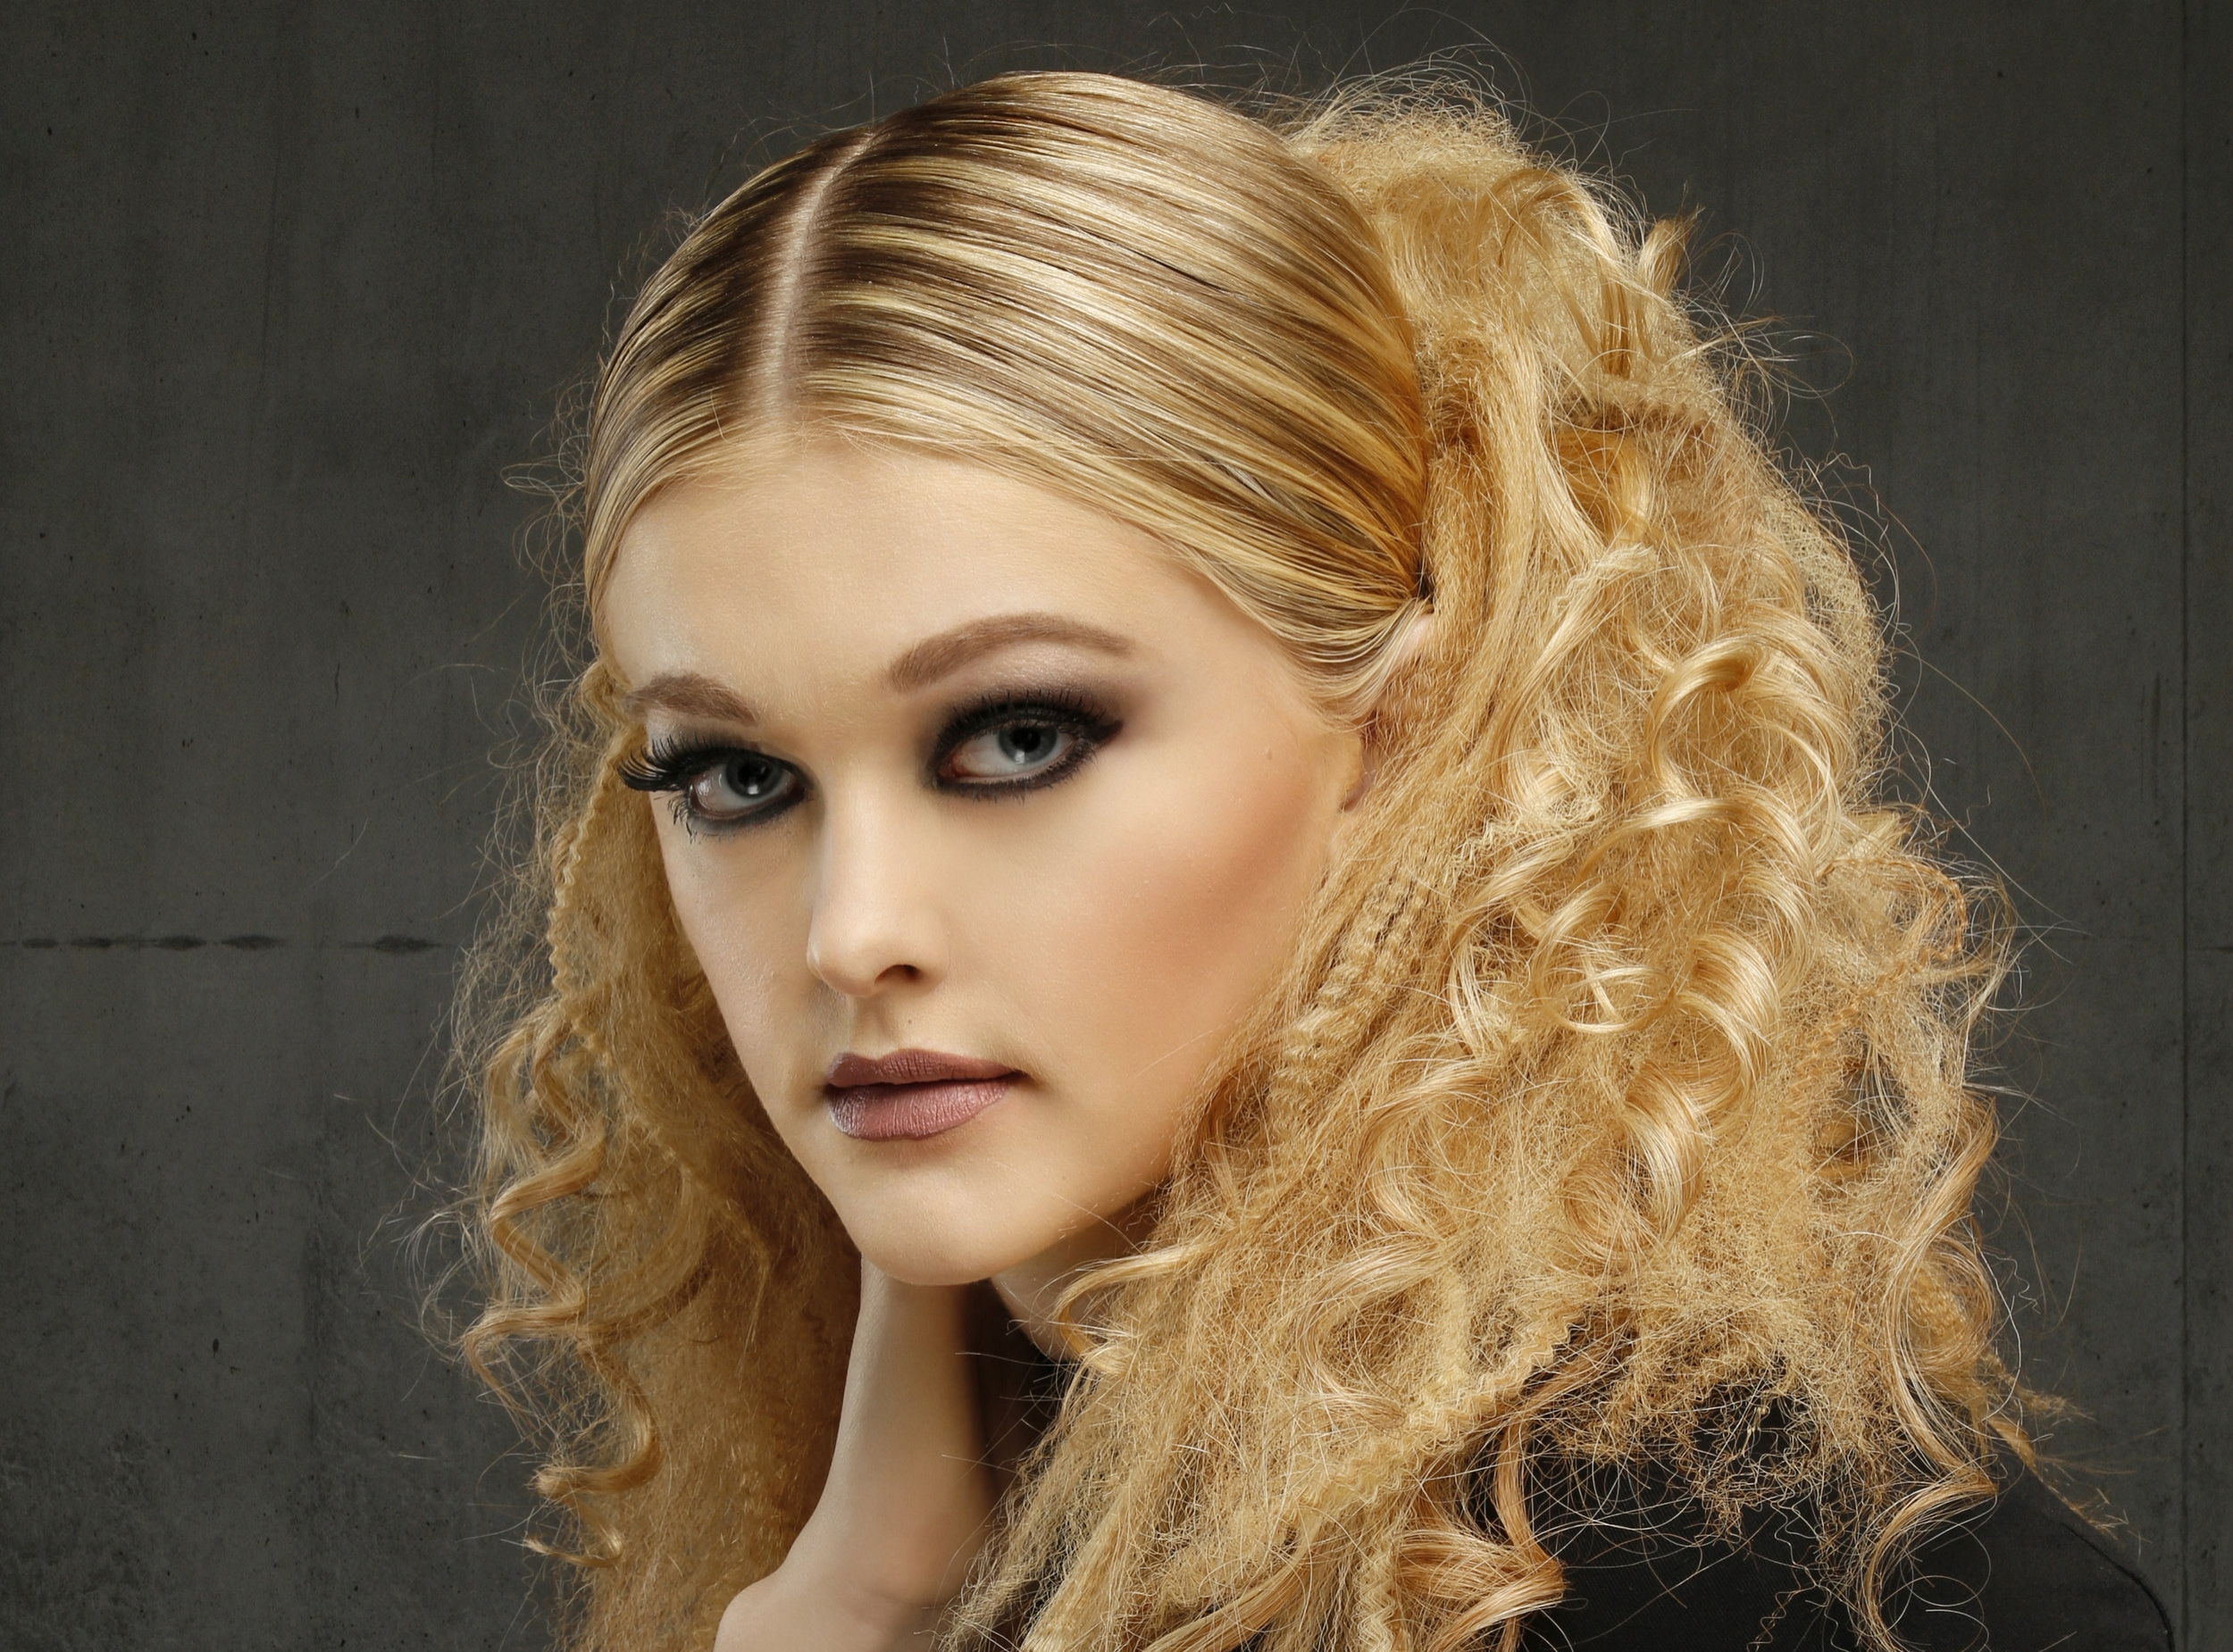 Hair by Beth Jonhson and Heather Porello. Makeup by Heather Porello. Michael Christopher Salon, Cleveland, OH.-100_pp.jpg